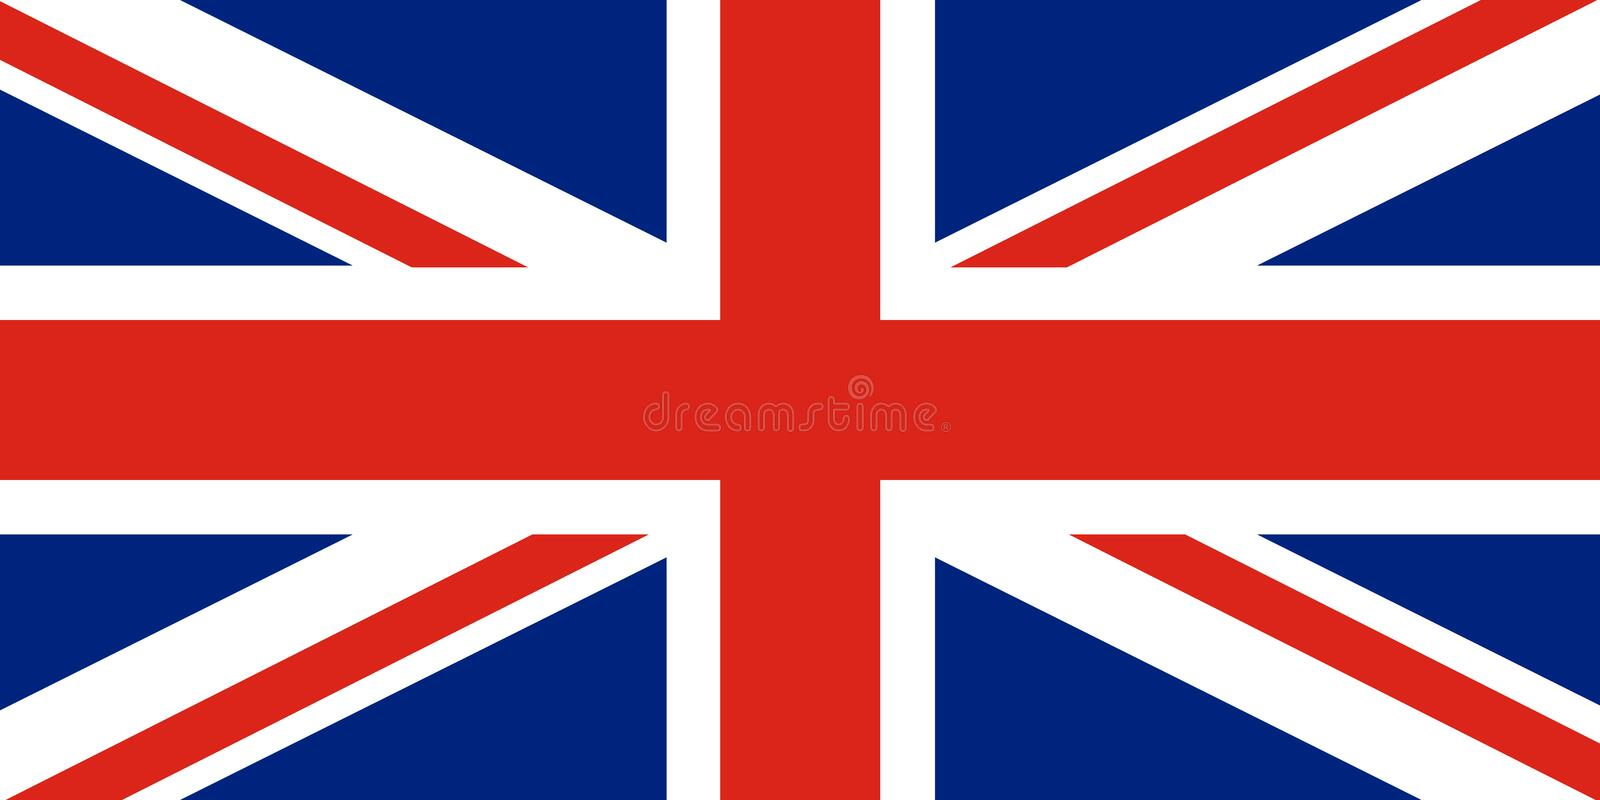 Union Jack. United Kingdom flag. Red cross on combined red and white saltires with white borders, over dark blue background. Flag of Great Britain. Flag of stock illustration